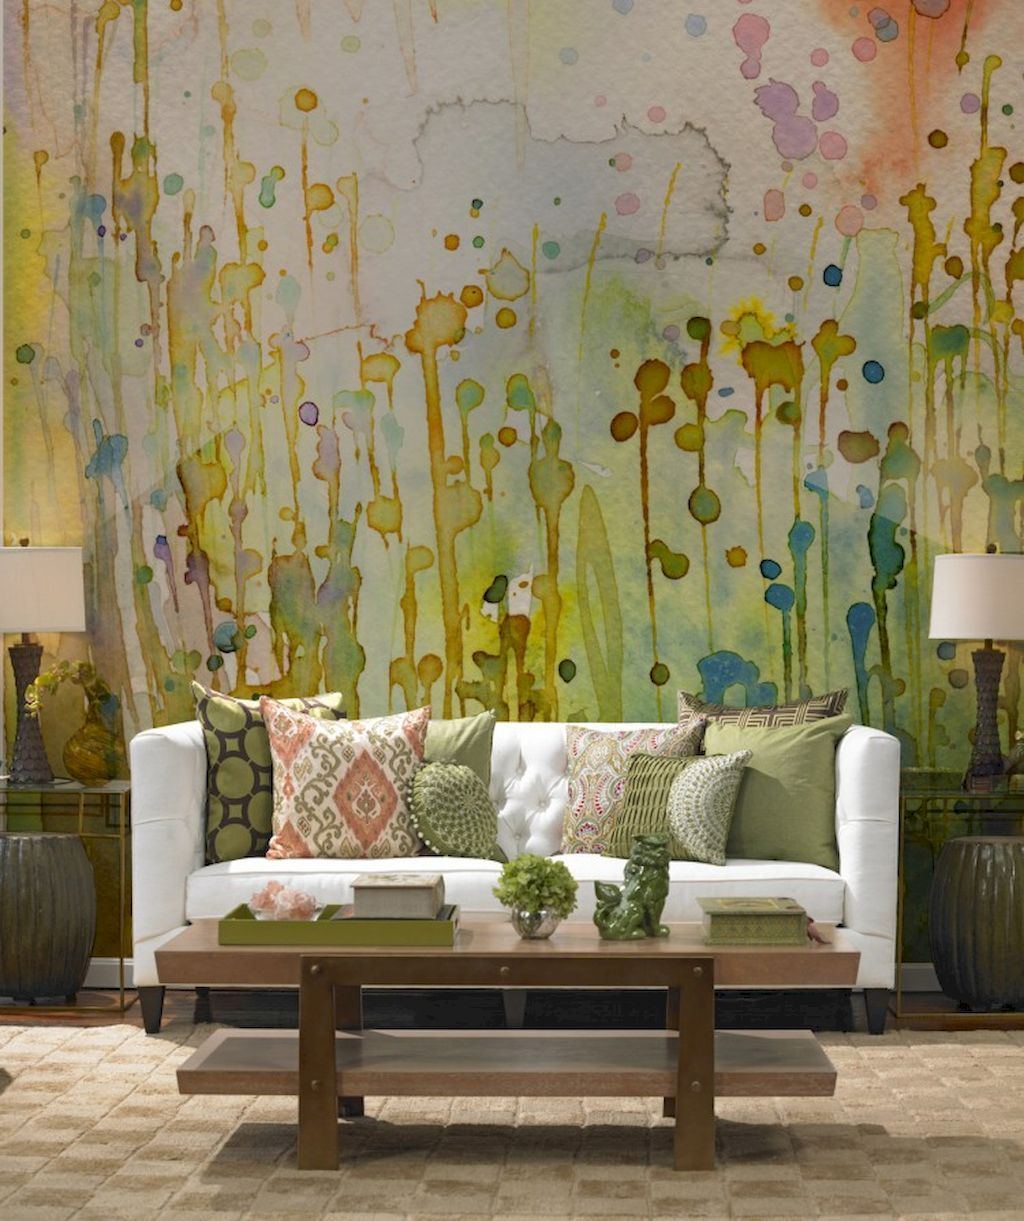 22 diy painted ombre wall for apartment decor ideas on wall murals id=92840